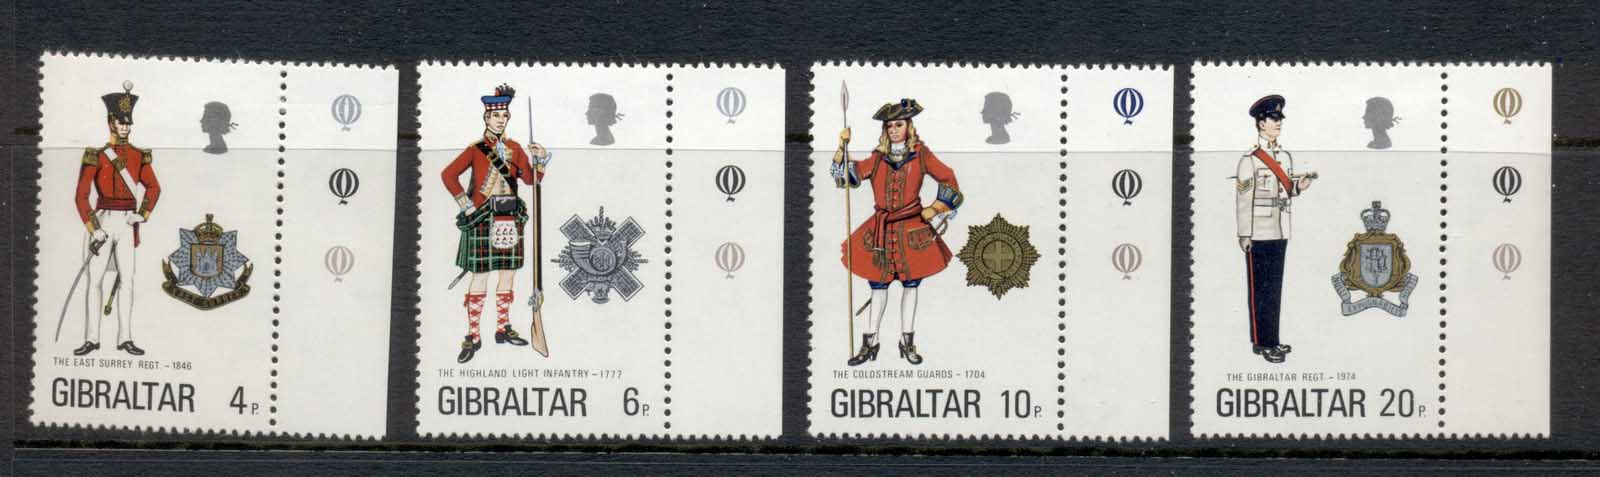 Gibraltar 1975 Military Uniforms MLH